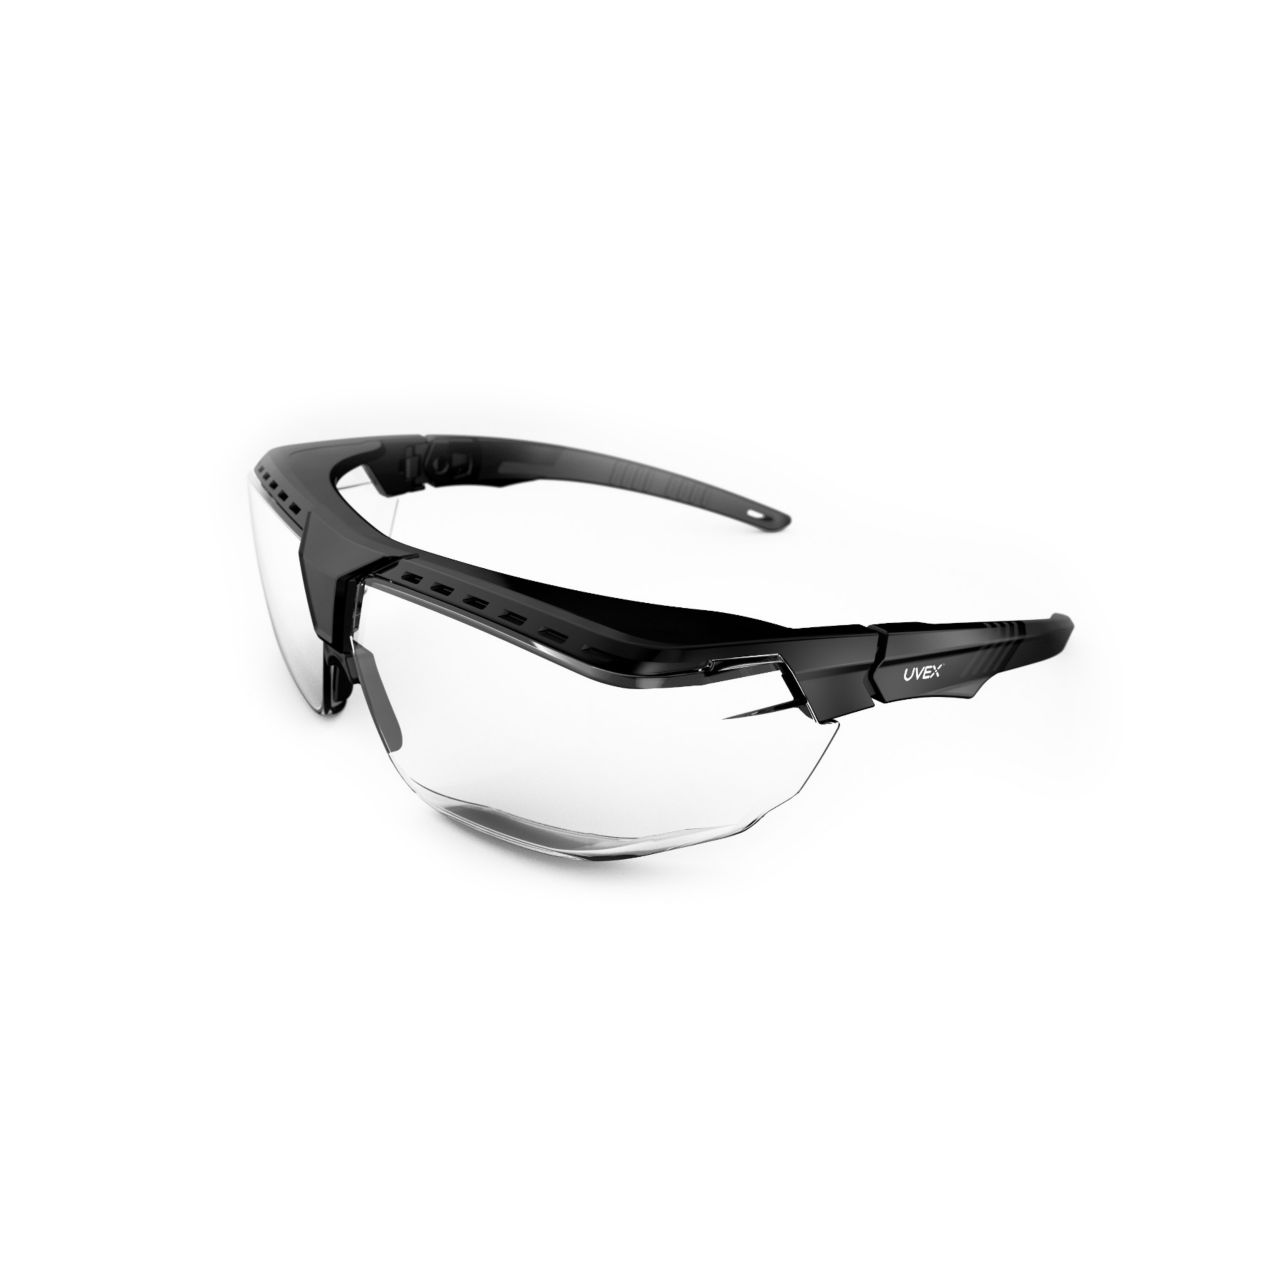 UX_uvex-avatar-otg-safety-glasses_s3850_uvex_avatar_otg_black_black_clear_wb